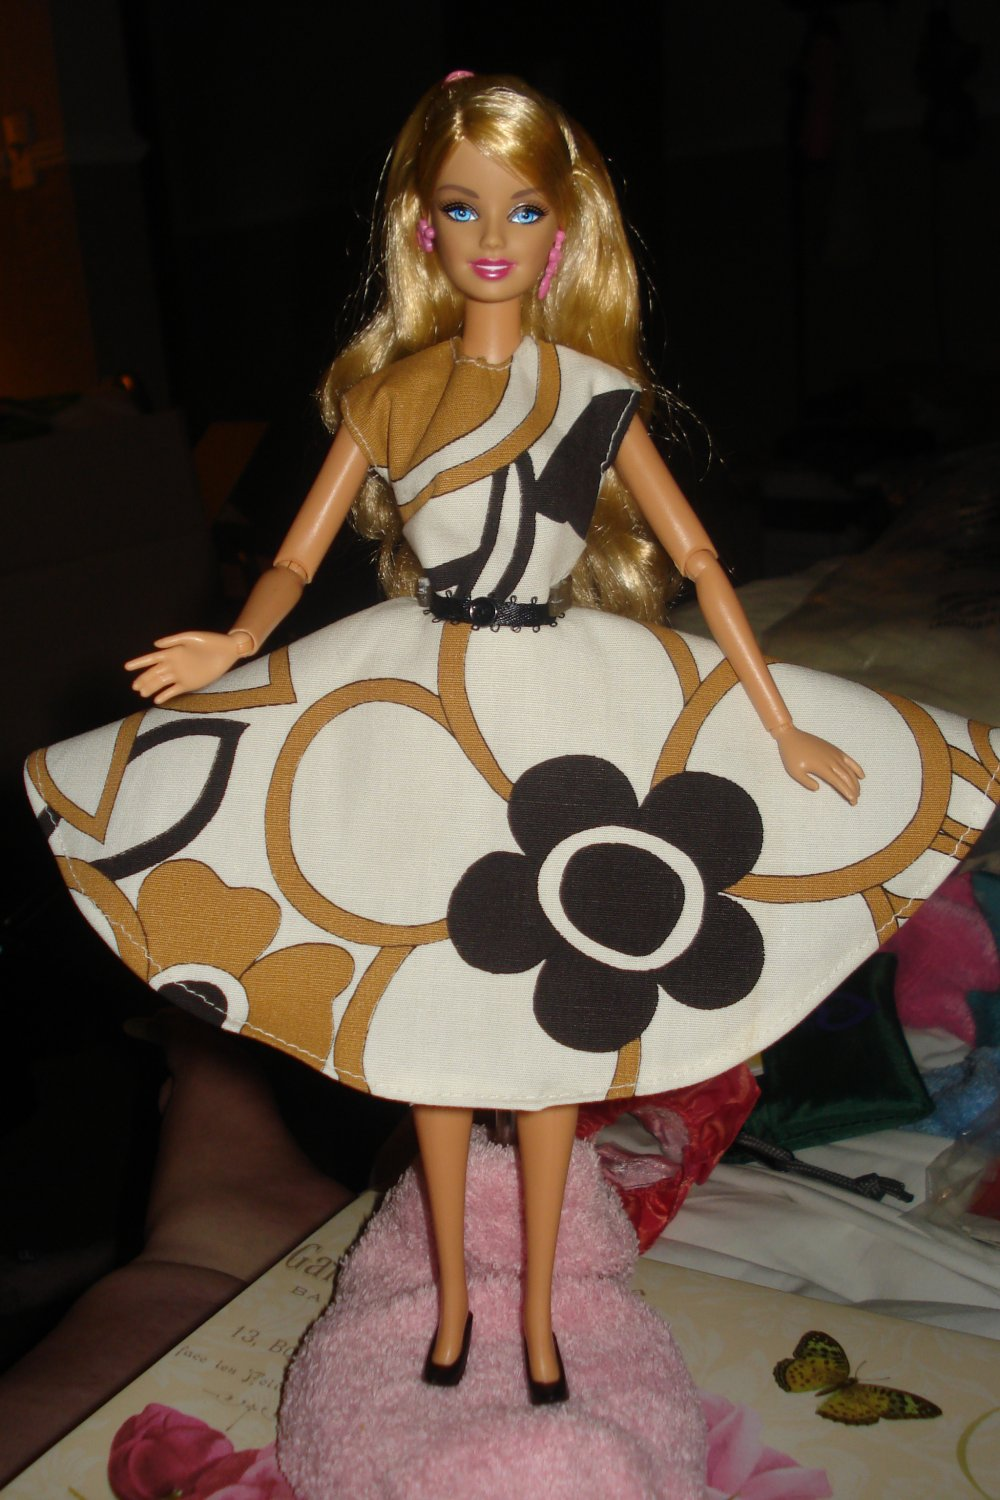 Circular skirt dress in abstract floral multi-color print for Barbie - ed18